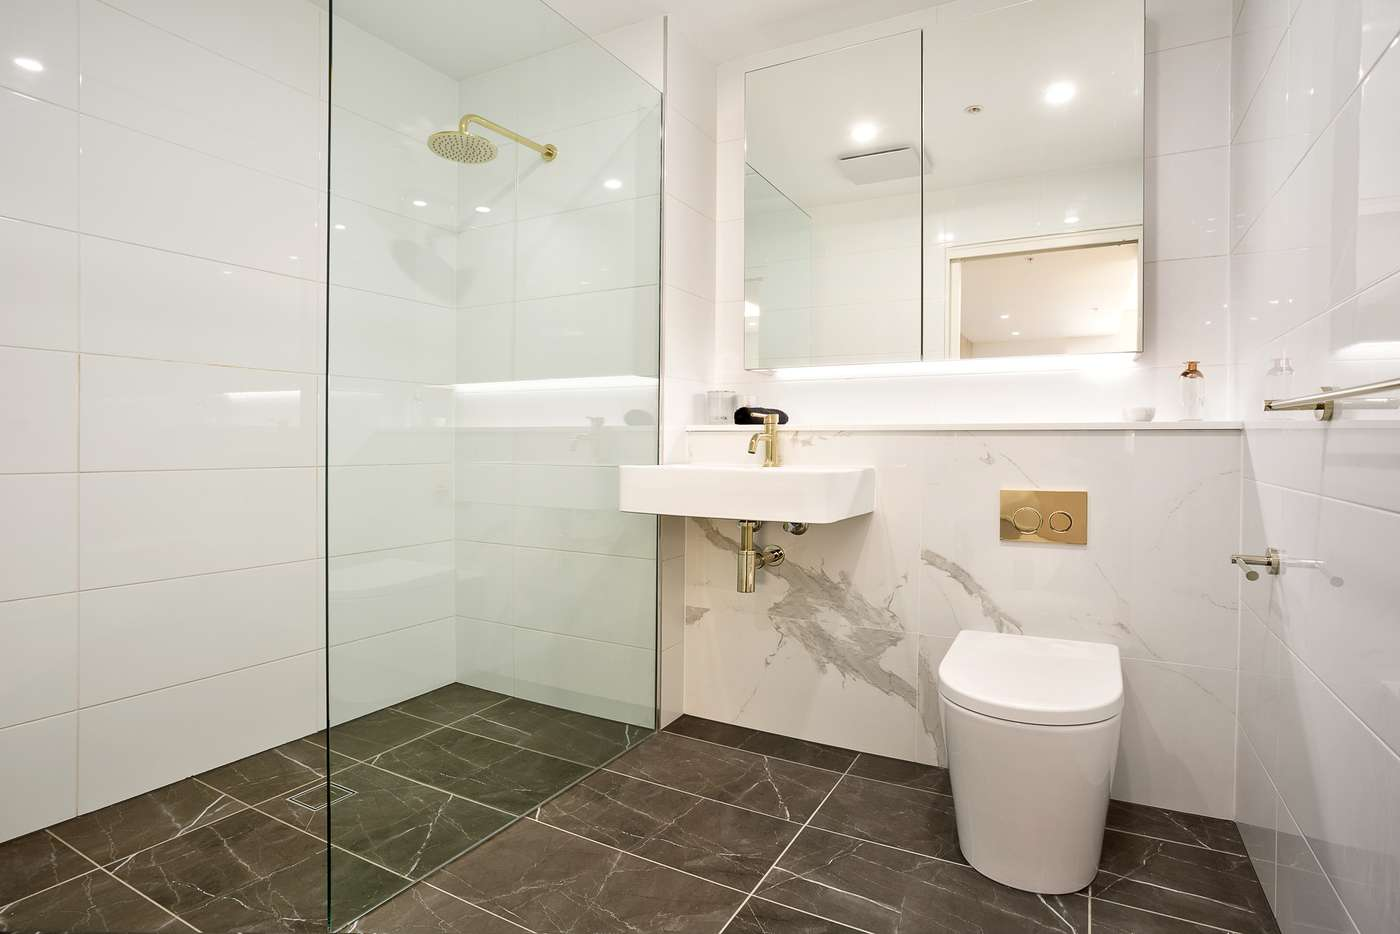 Fifth view of Homely apartment listing, J10080/17 Amalfi Drive, Wentworth Point NSW 2127